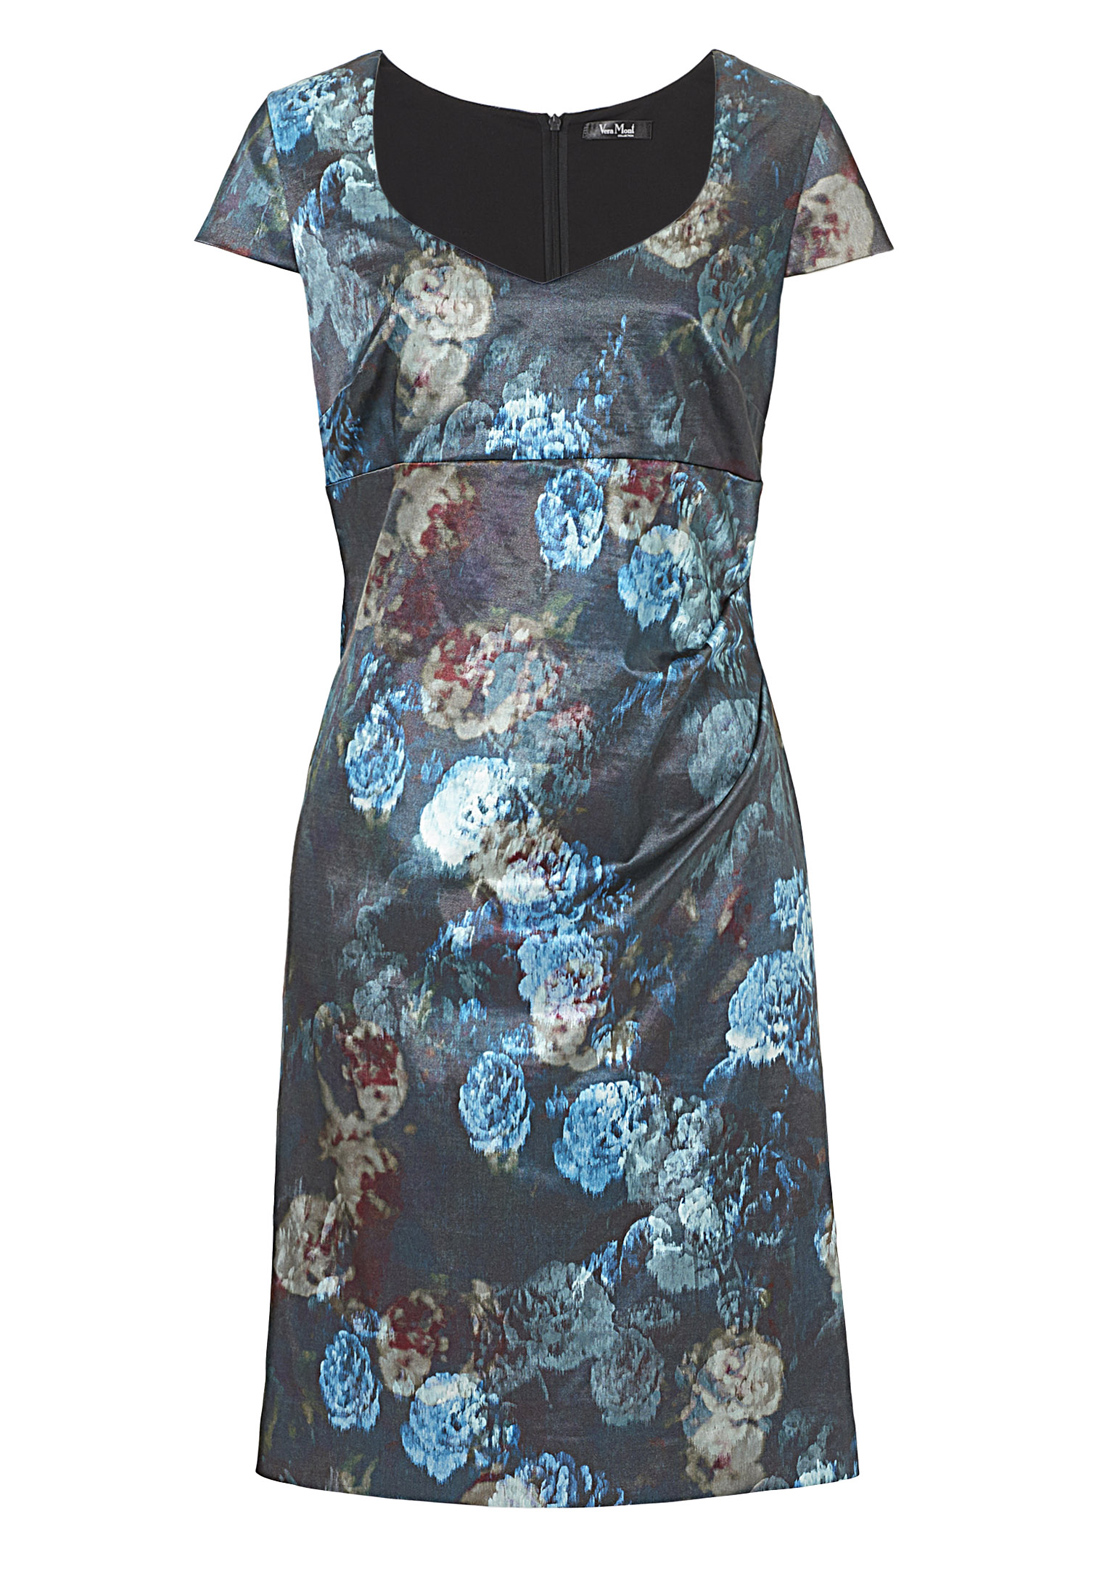 Vera Mont Floral Print Short Sleeve Dress, Blue Multi